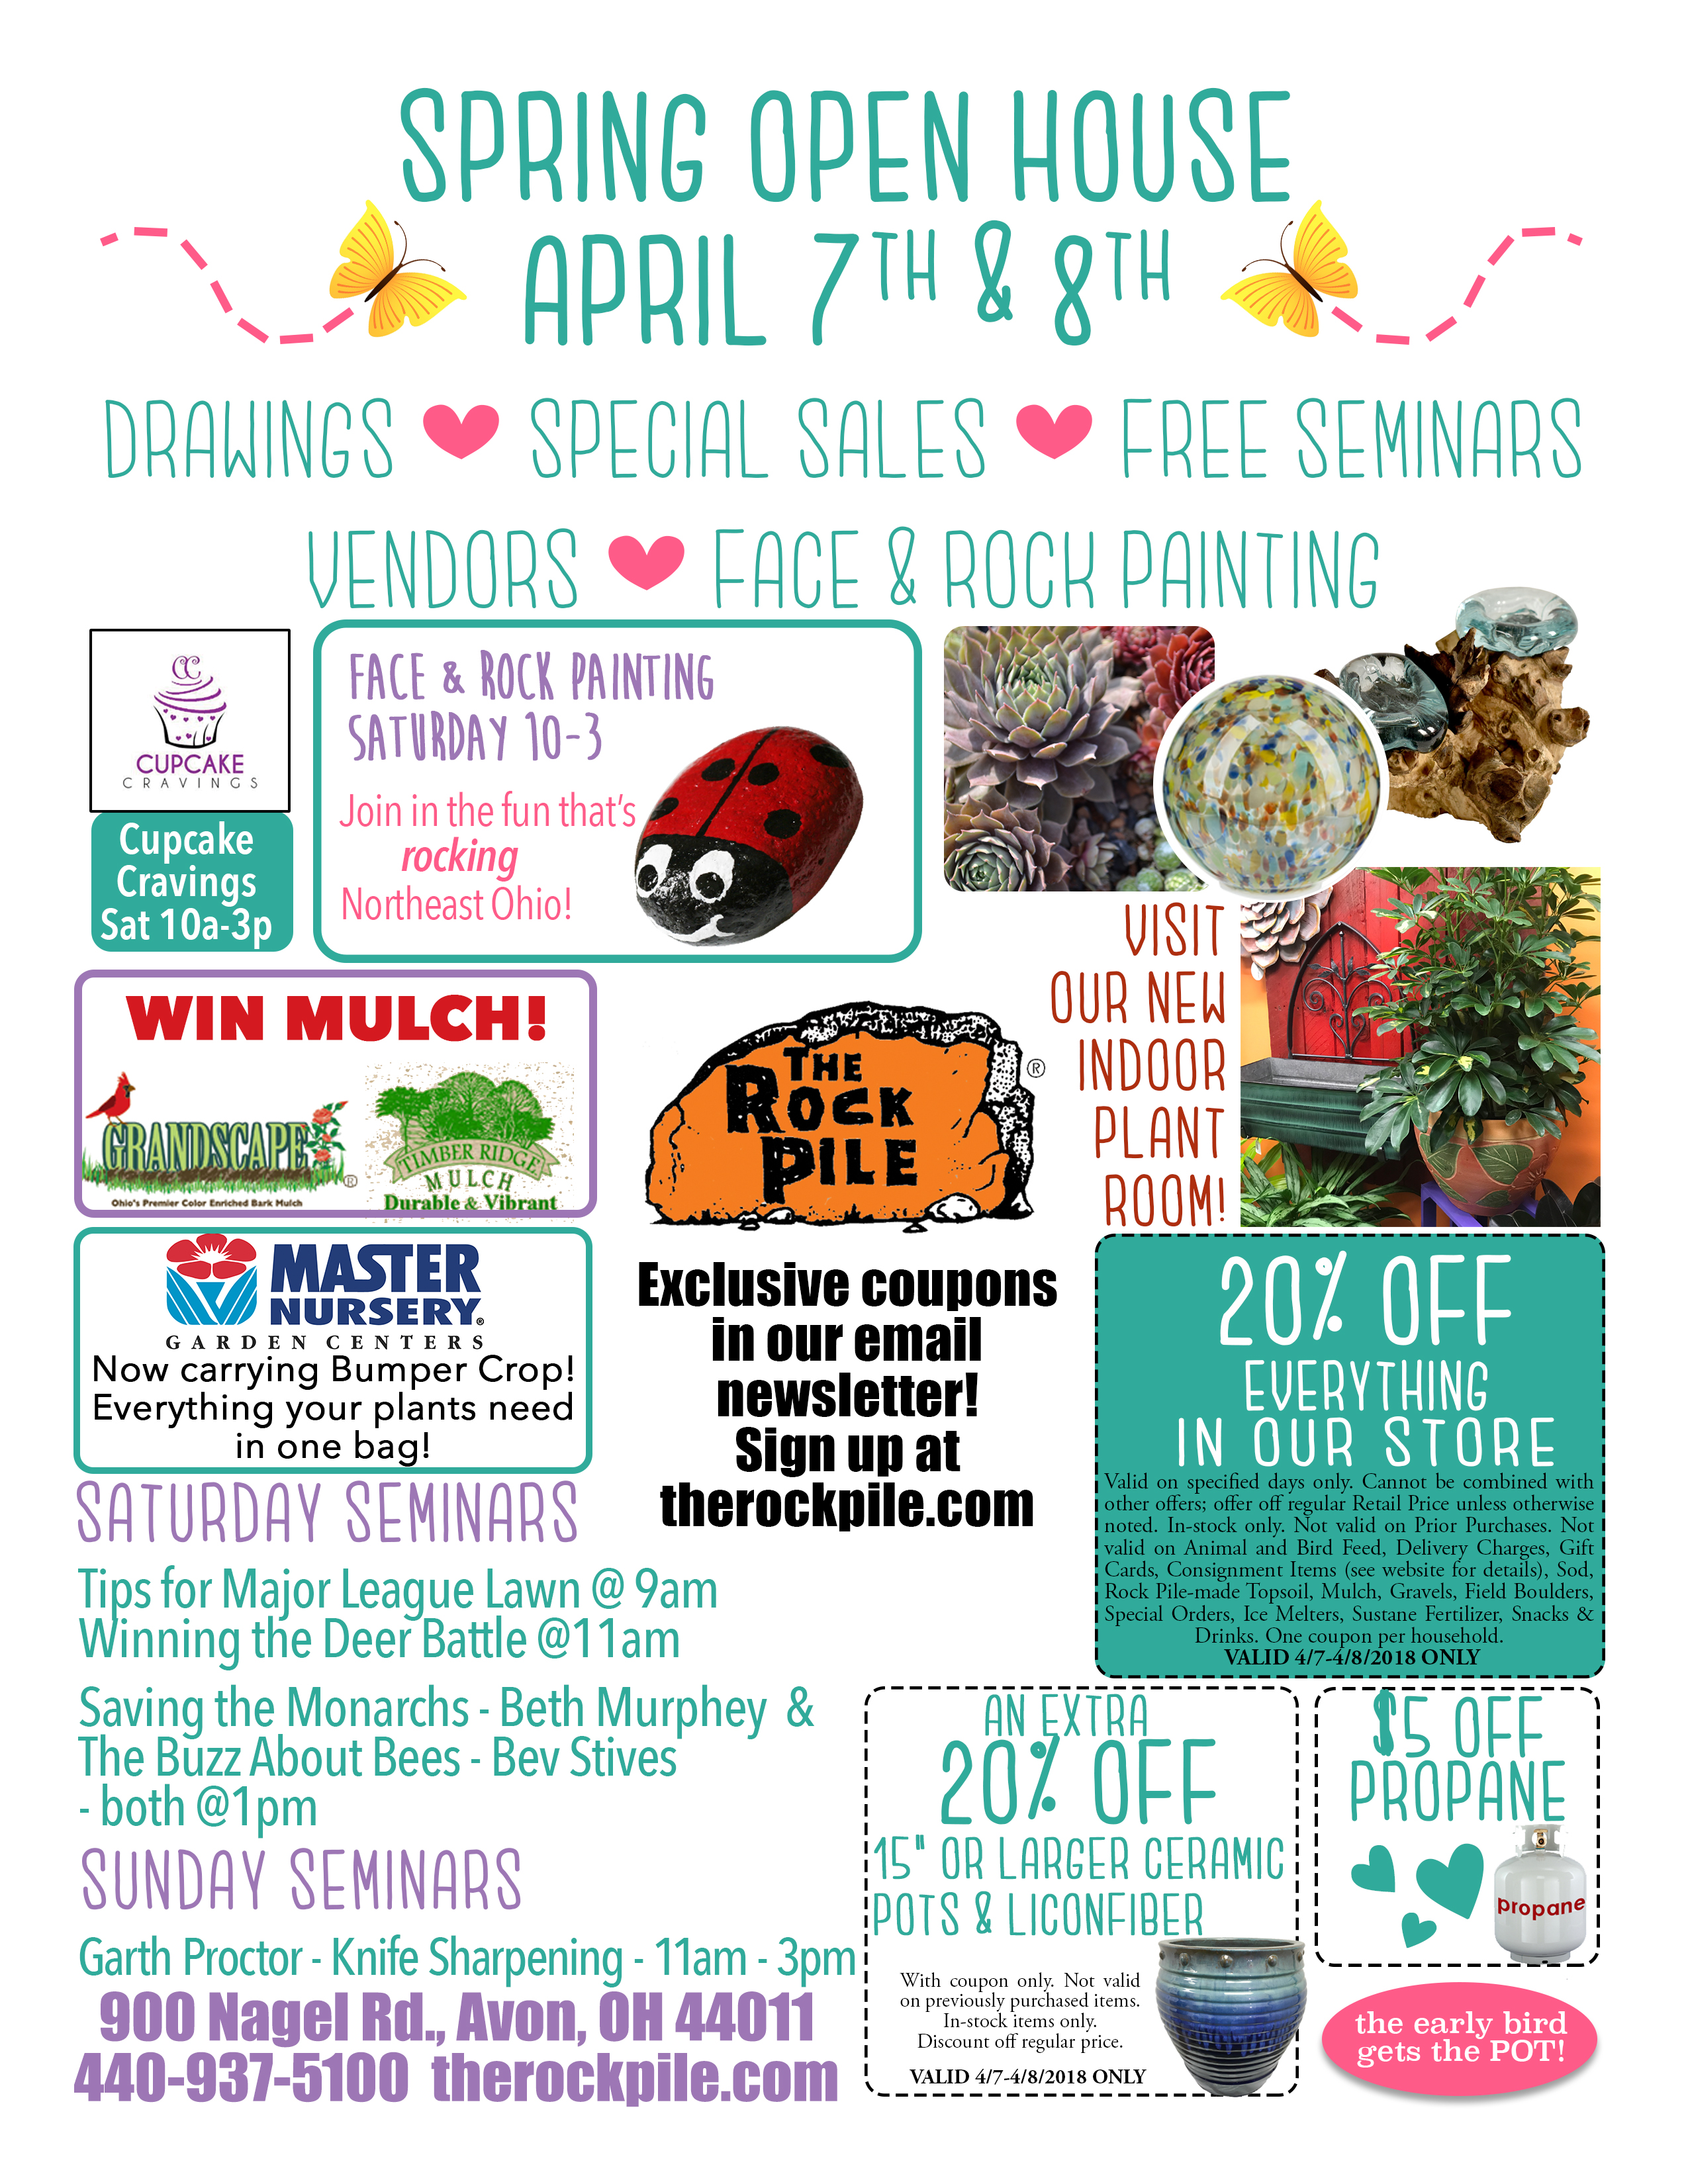 Spring Open House Sara From Sincerly Sara D: Spring-open-house-flyer-color